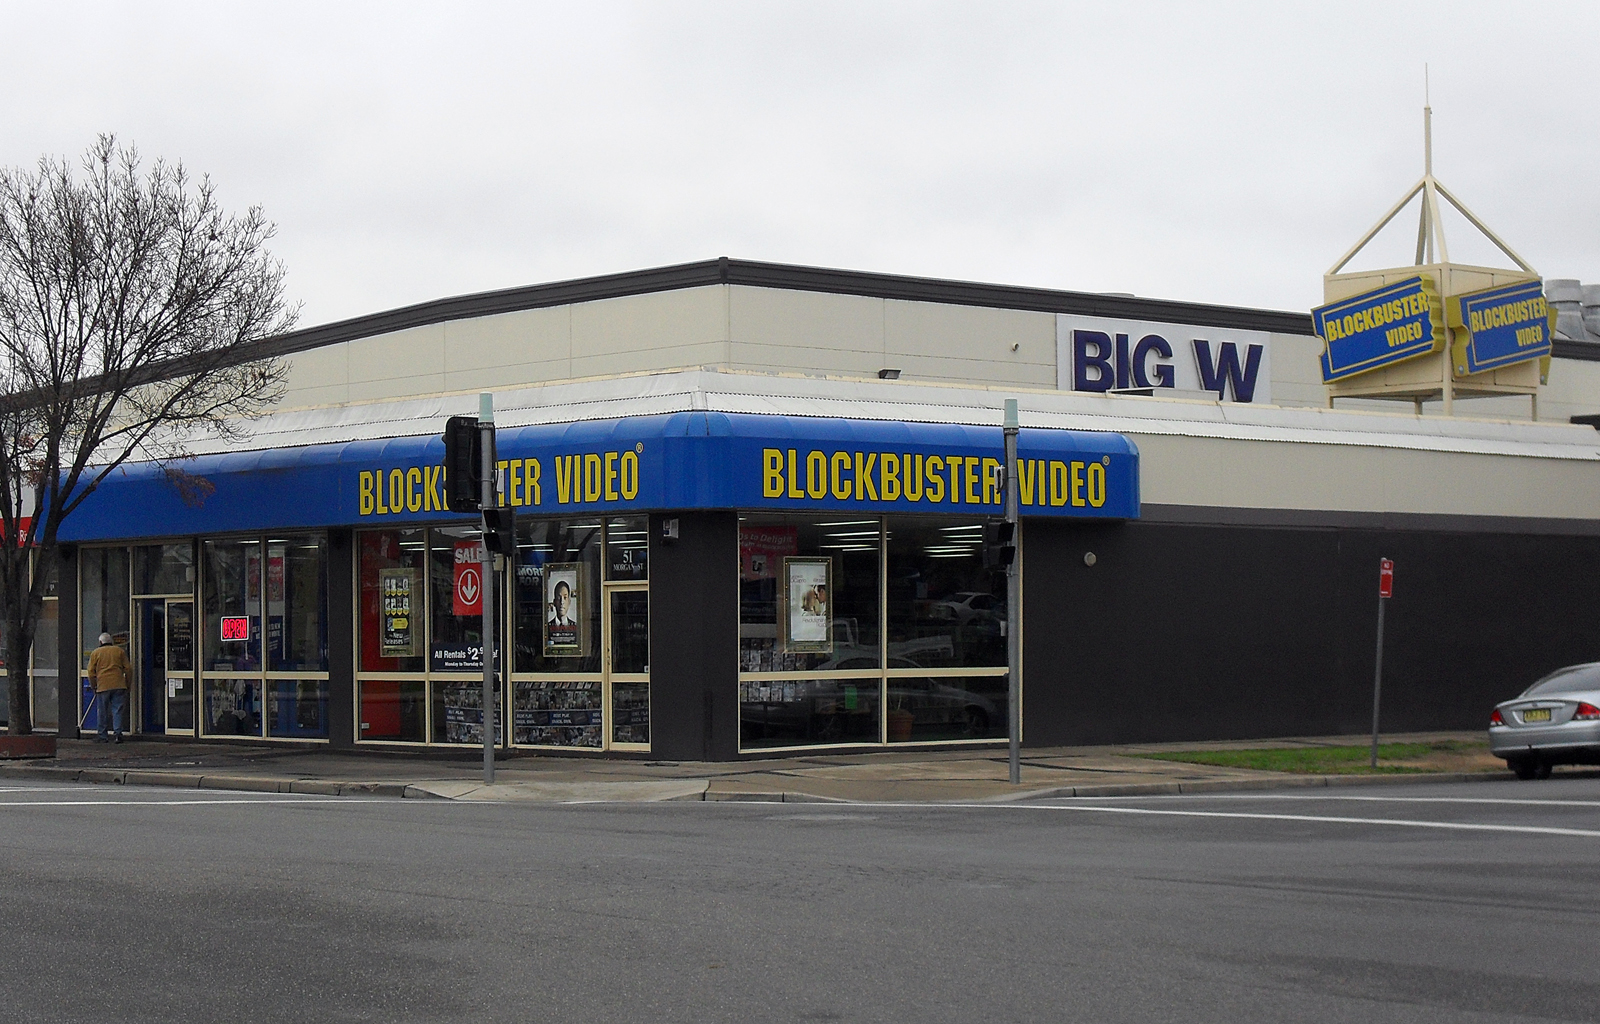 Blockbuster_Video_Wagga_Wagga.jpg